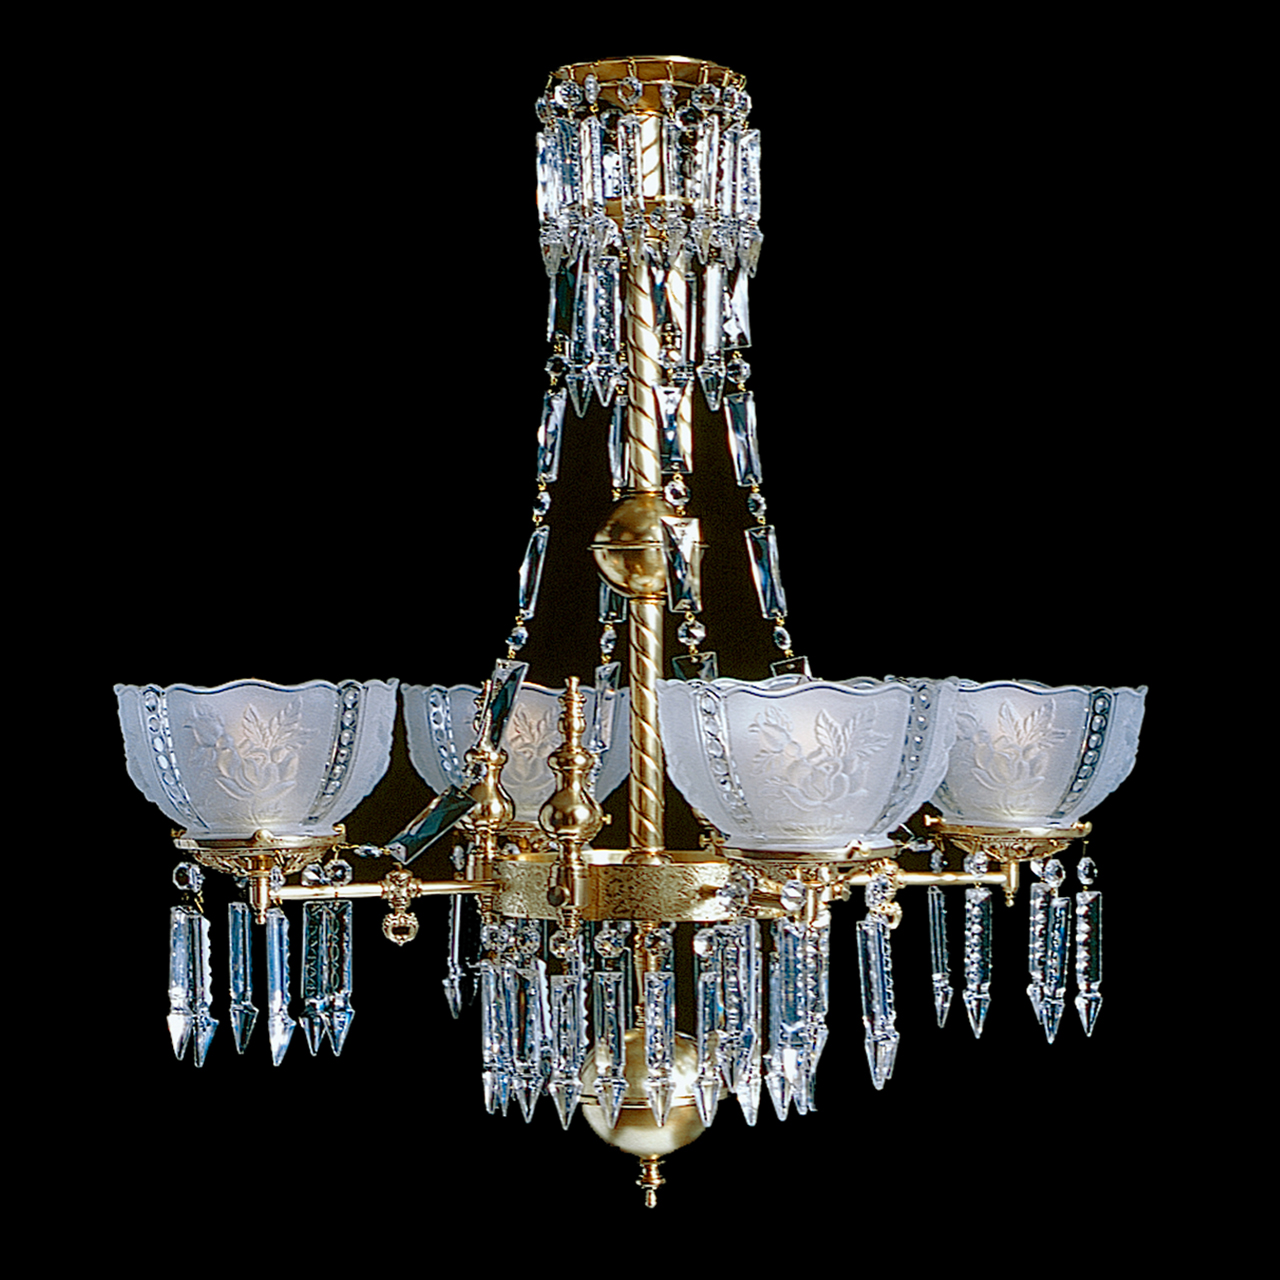 Kings chandelier co restoration design for the vintage house whitaker 4b gasolier beauregard chesapeake crystal chandeliers aloadofball Gallery